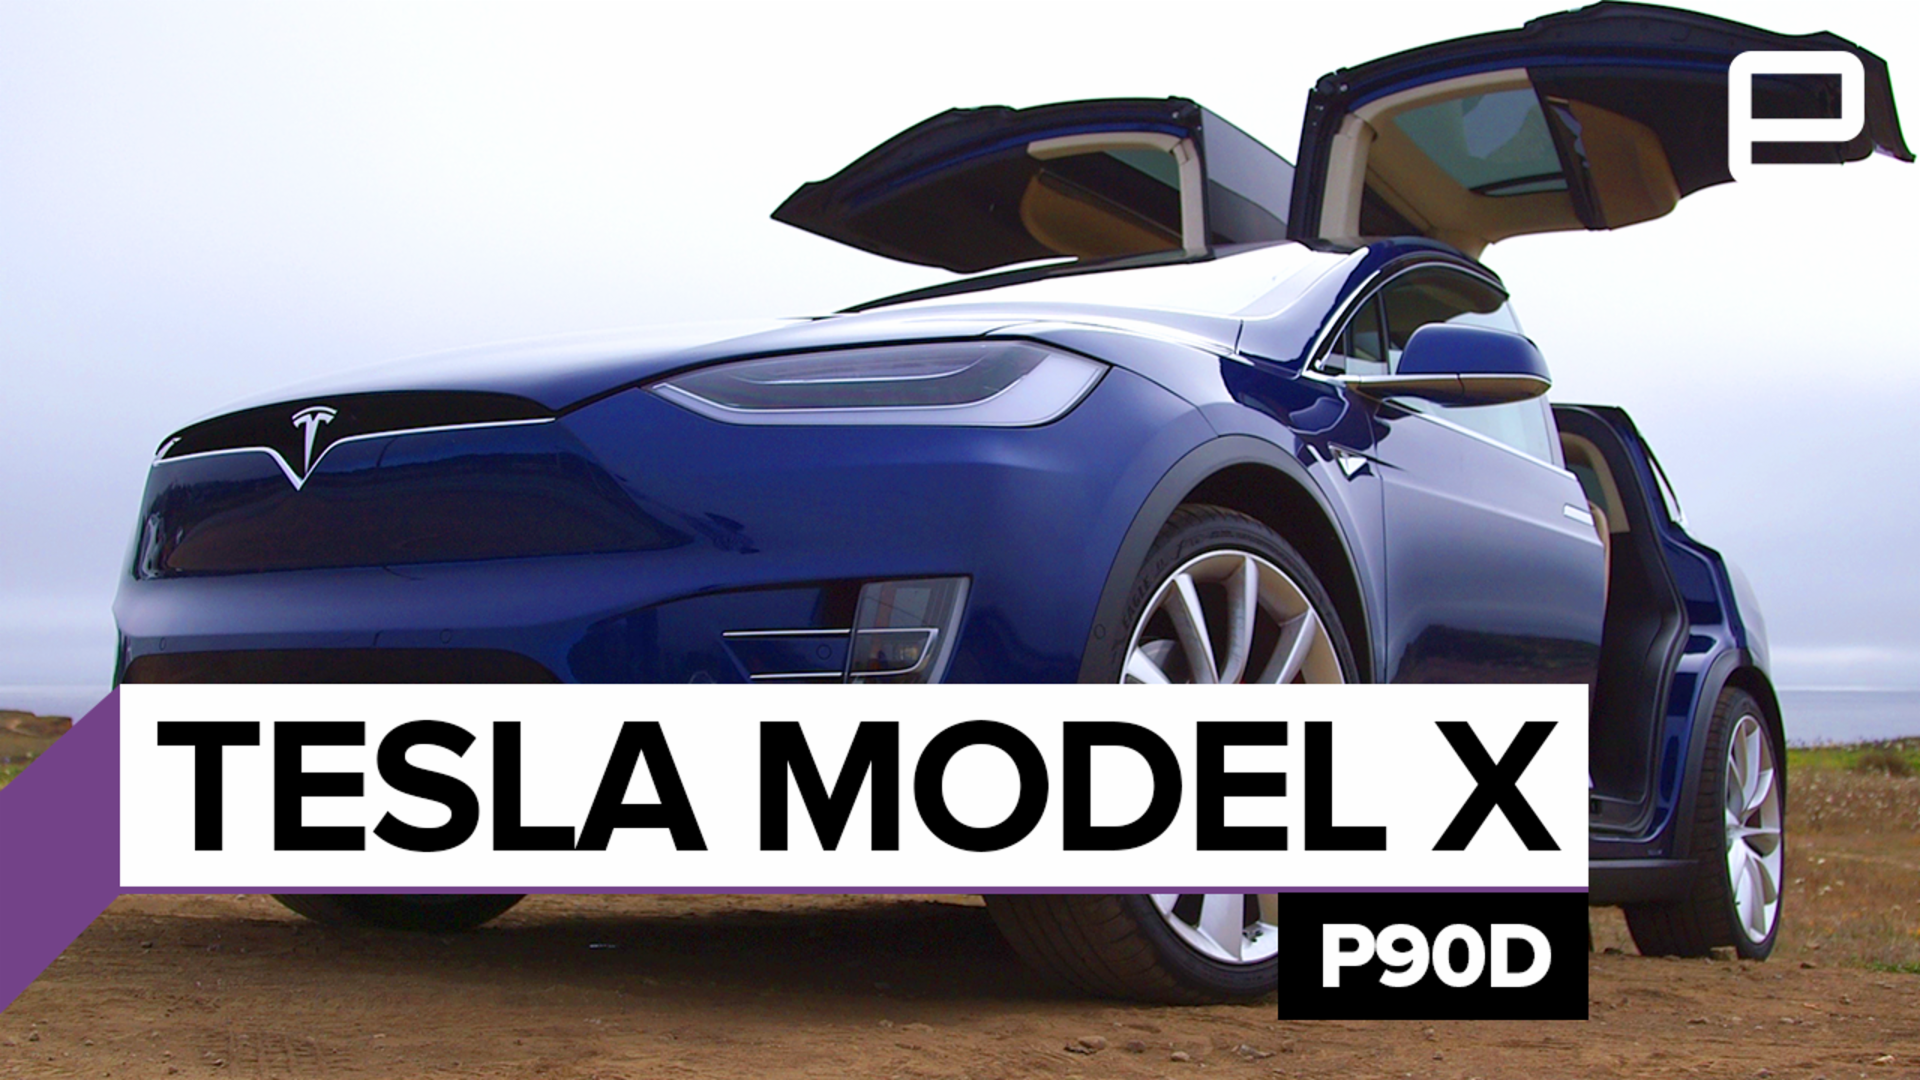 Tesla Model X: The official SUV of the future